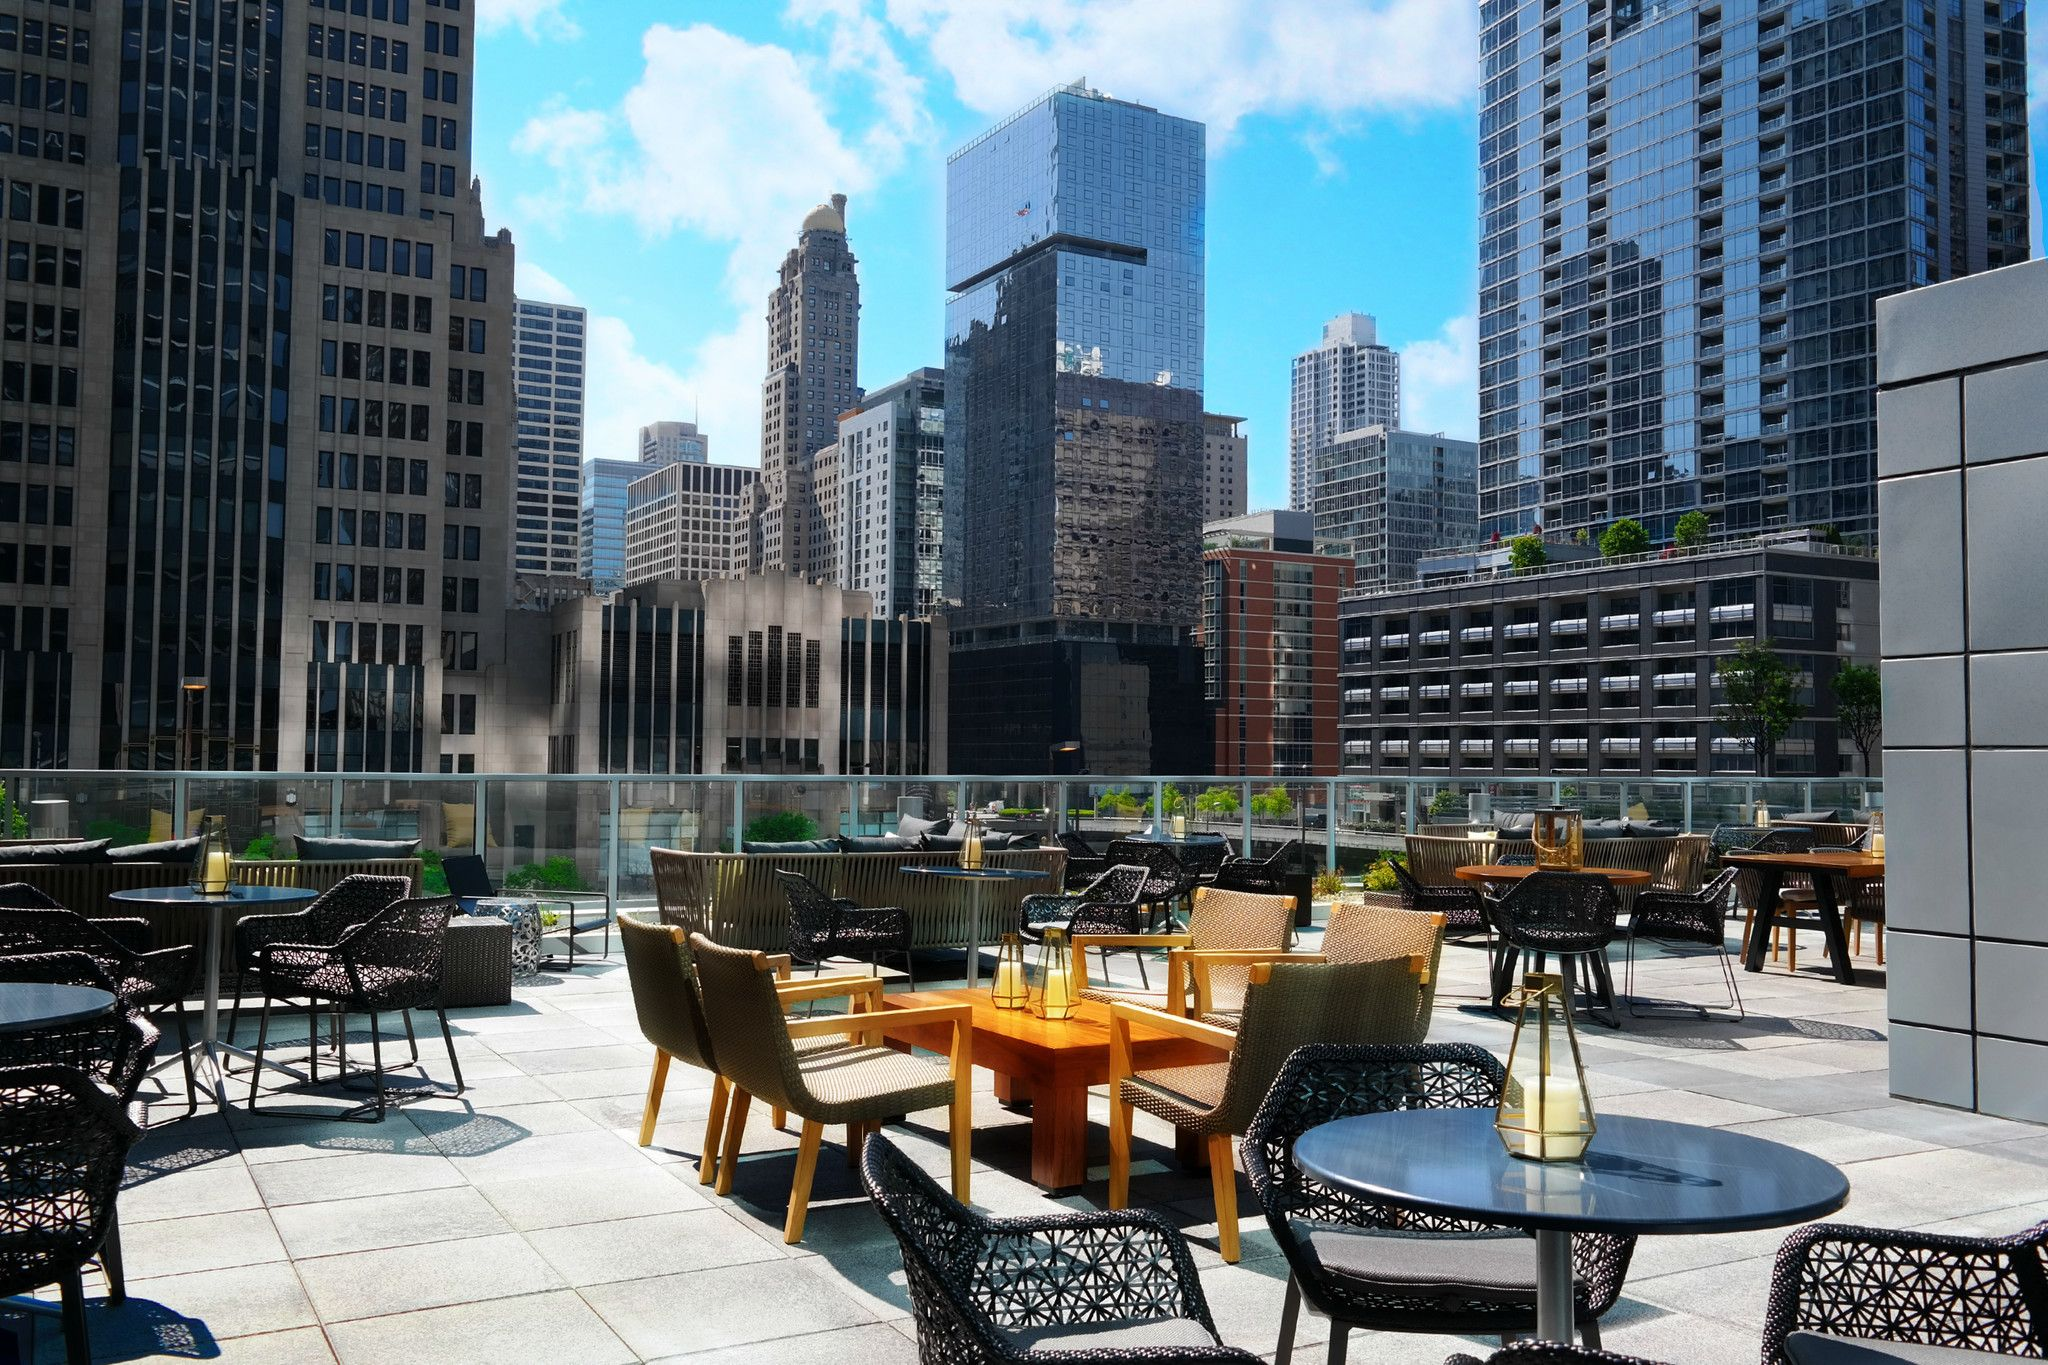 100 Plus Chicago Patios And Rooftops For Summer Eating And Drinking    Chicago Tribune